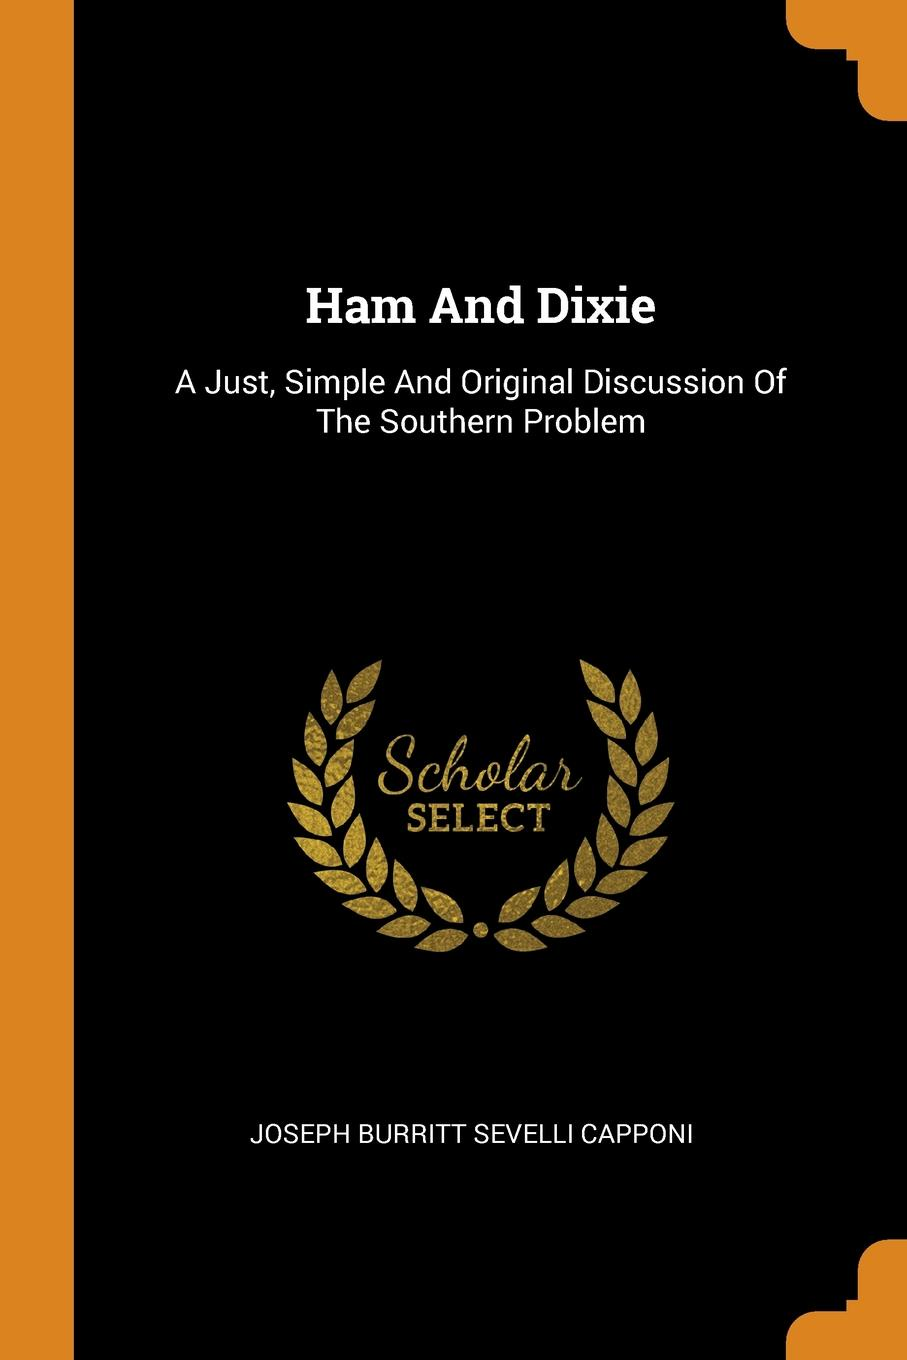 Ham And Dixie. A Just, Simple And Original Discussion Of The Southern Problem